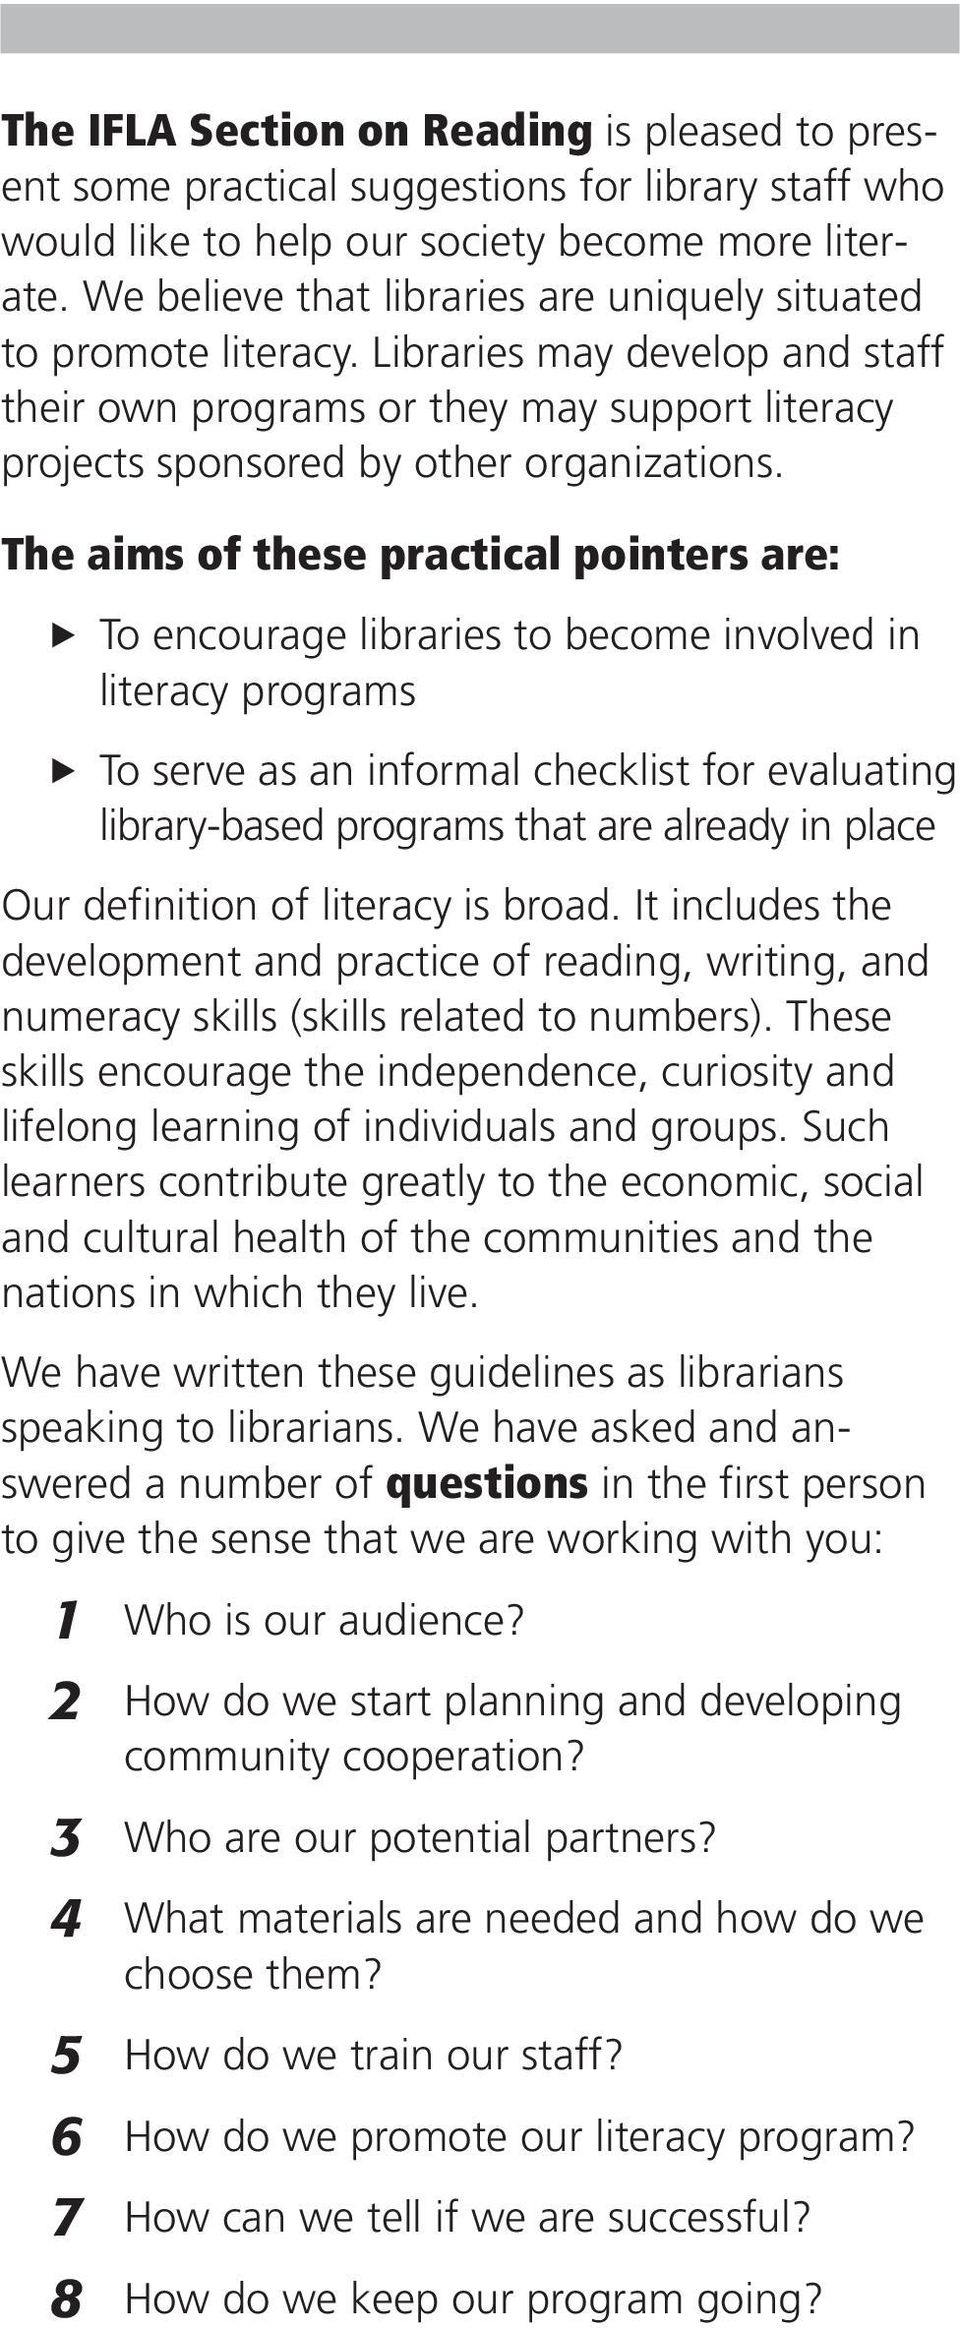 The aims of these practical pointers are: To encourage libraries to become involved in literacy programs To serve as an informal checklist for evaluating library-based programs that are already in